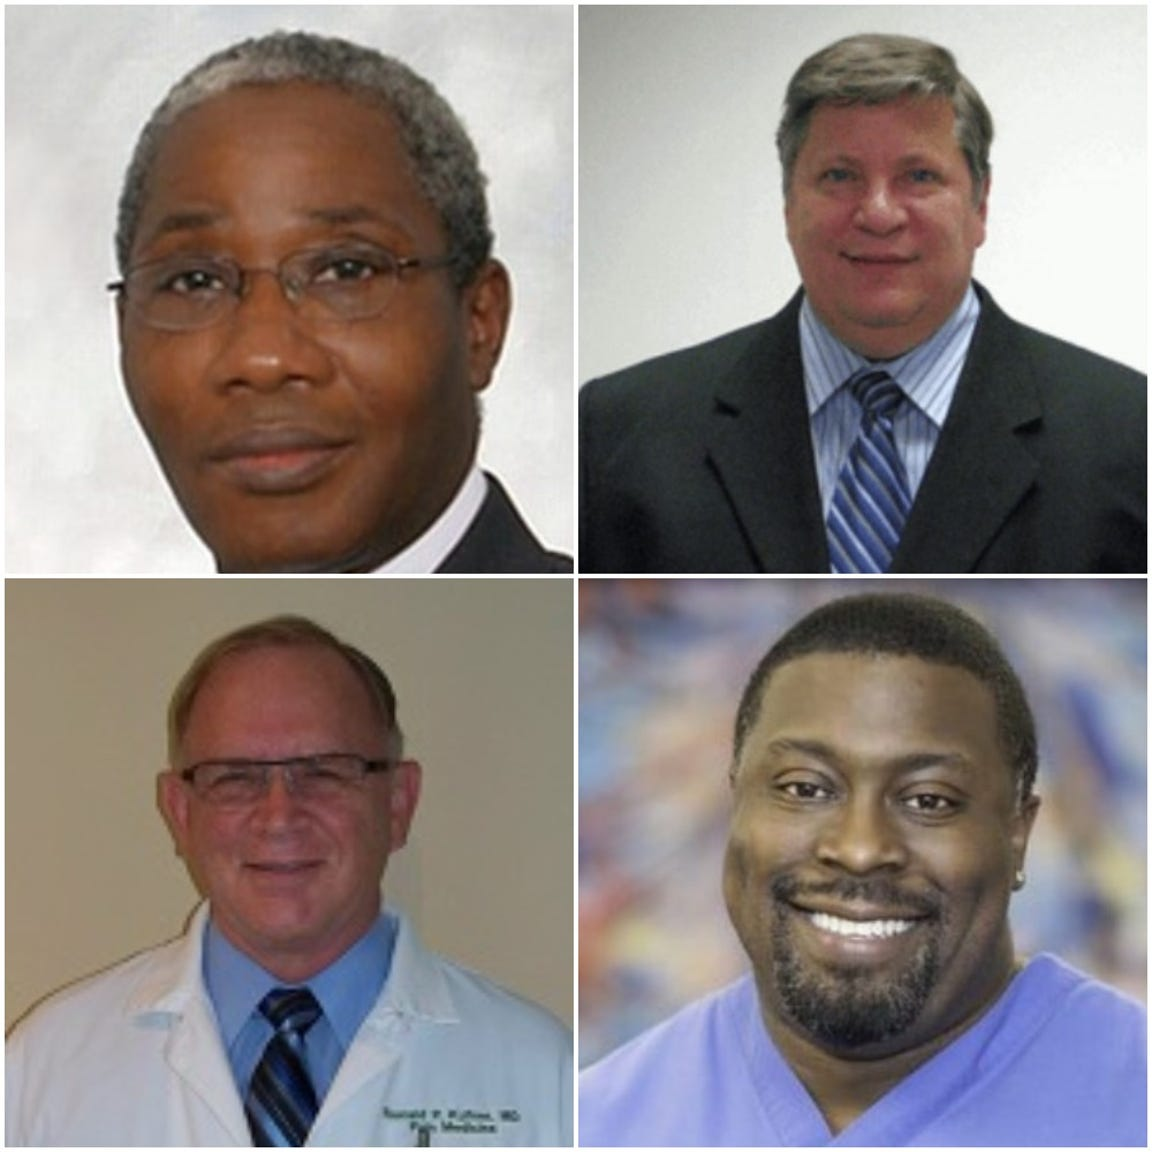 Five other Pain Center USA doctors were charged alongside Dr. Rajendra Bothra in December. Those indicted include Clockwise from left: Dr. Ganiu Edu, Dr. Eric Backos, Dr. David Lewis and Dr. Ronald Kufner.